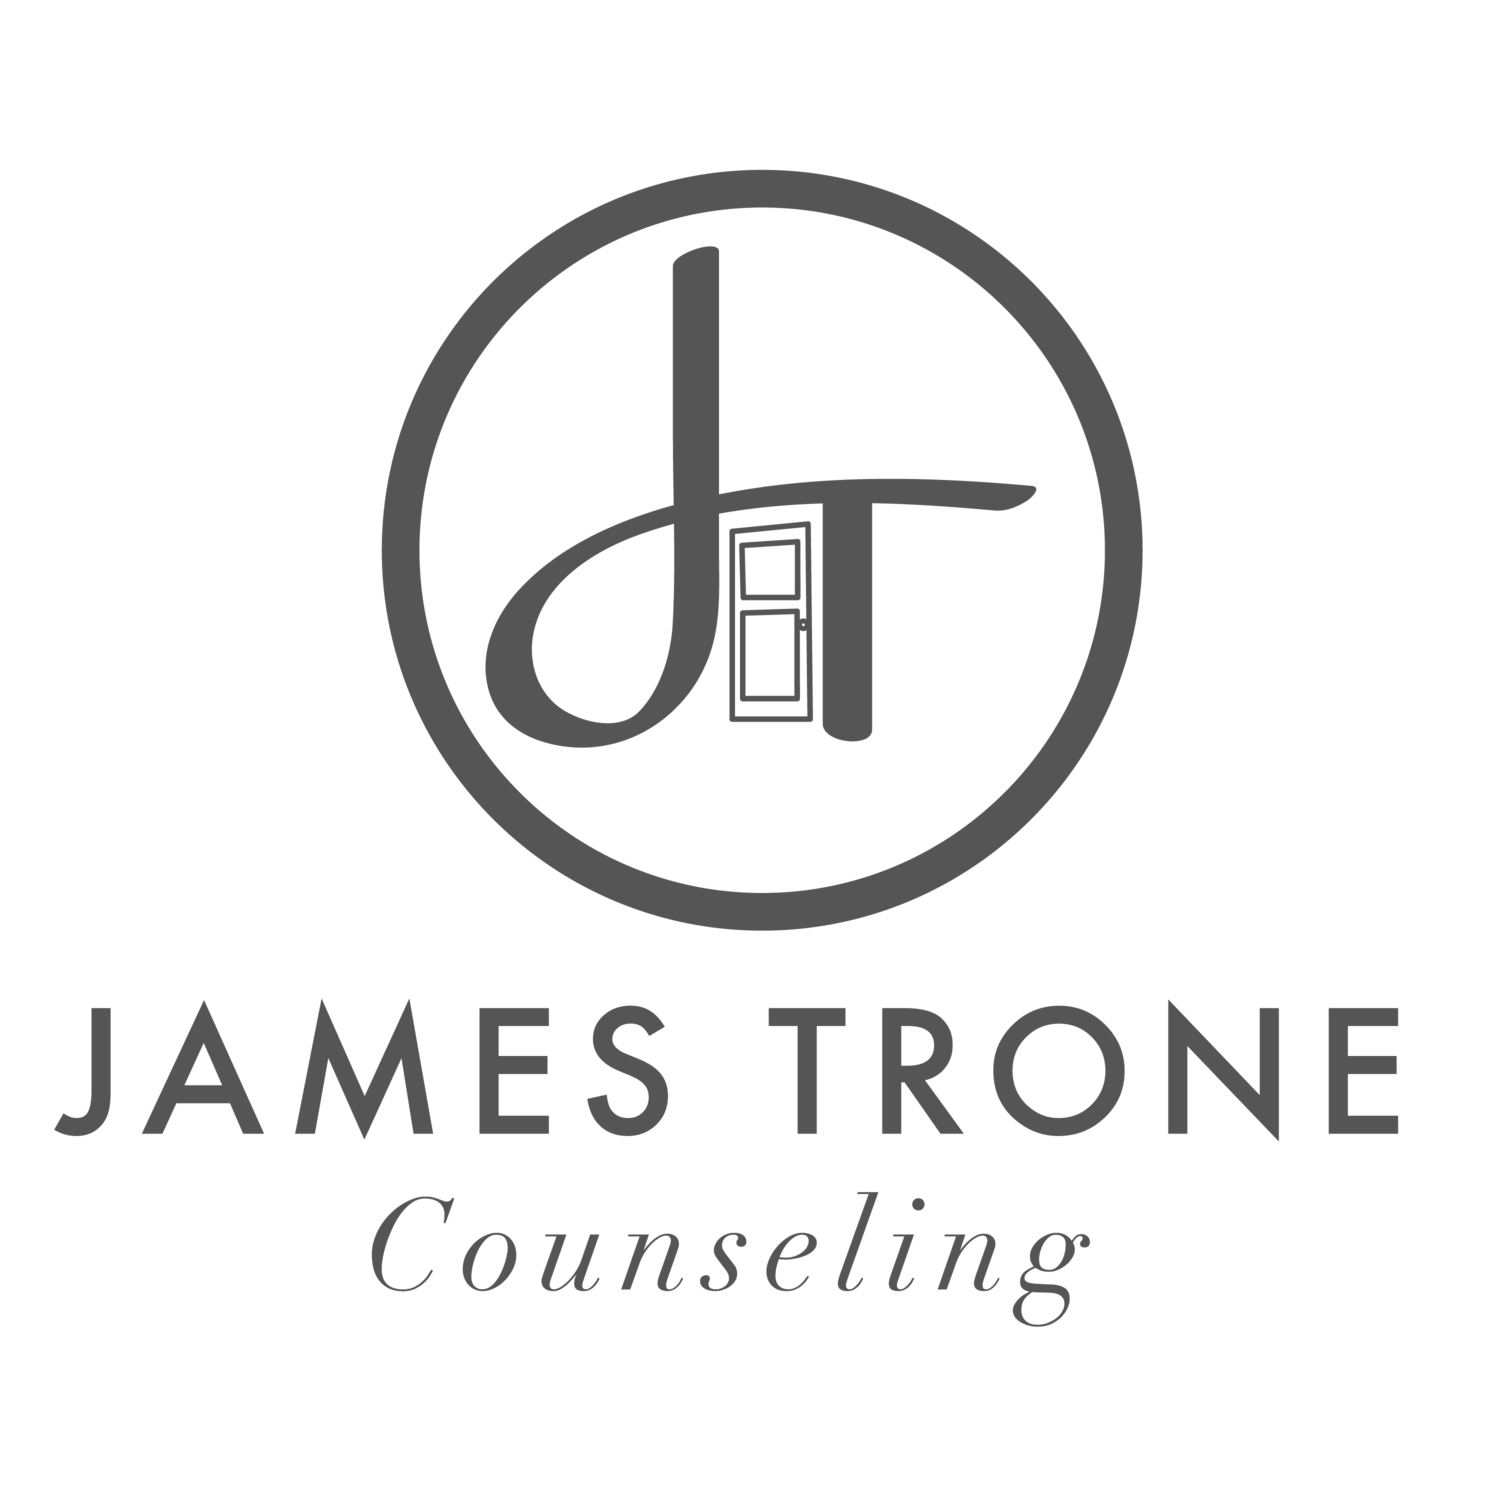 James Trone Counseling- Individual | Couples Therapy in Nashville